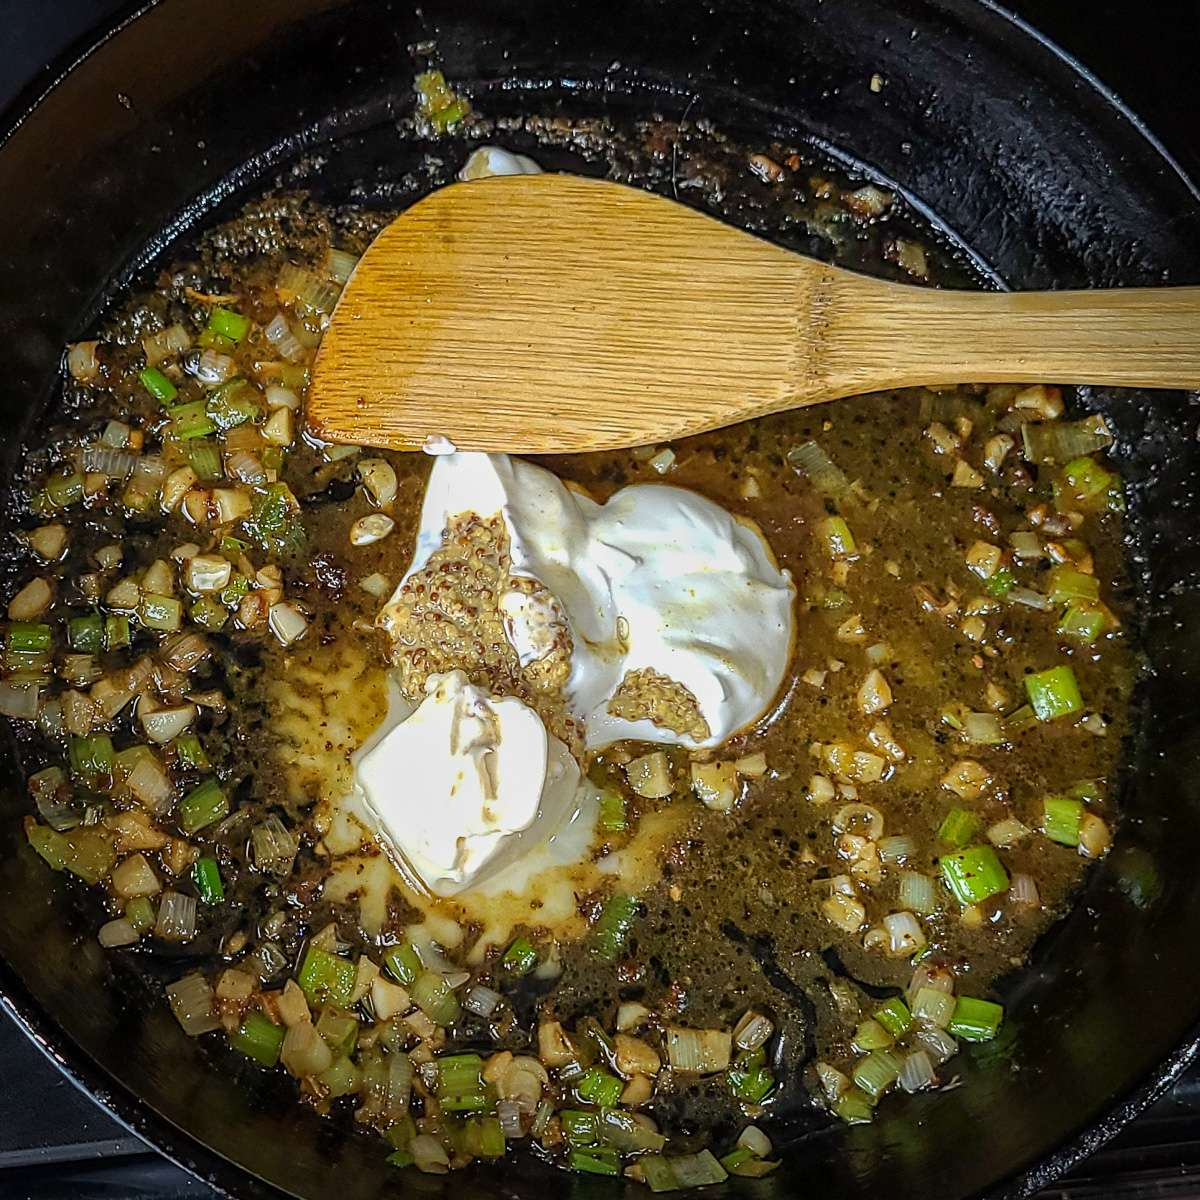 green onions, garlic, sour cream, dijon mustard and butter in a skillet